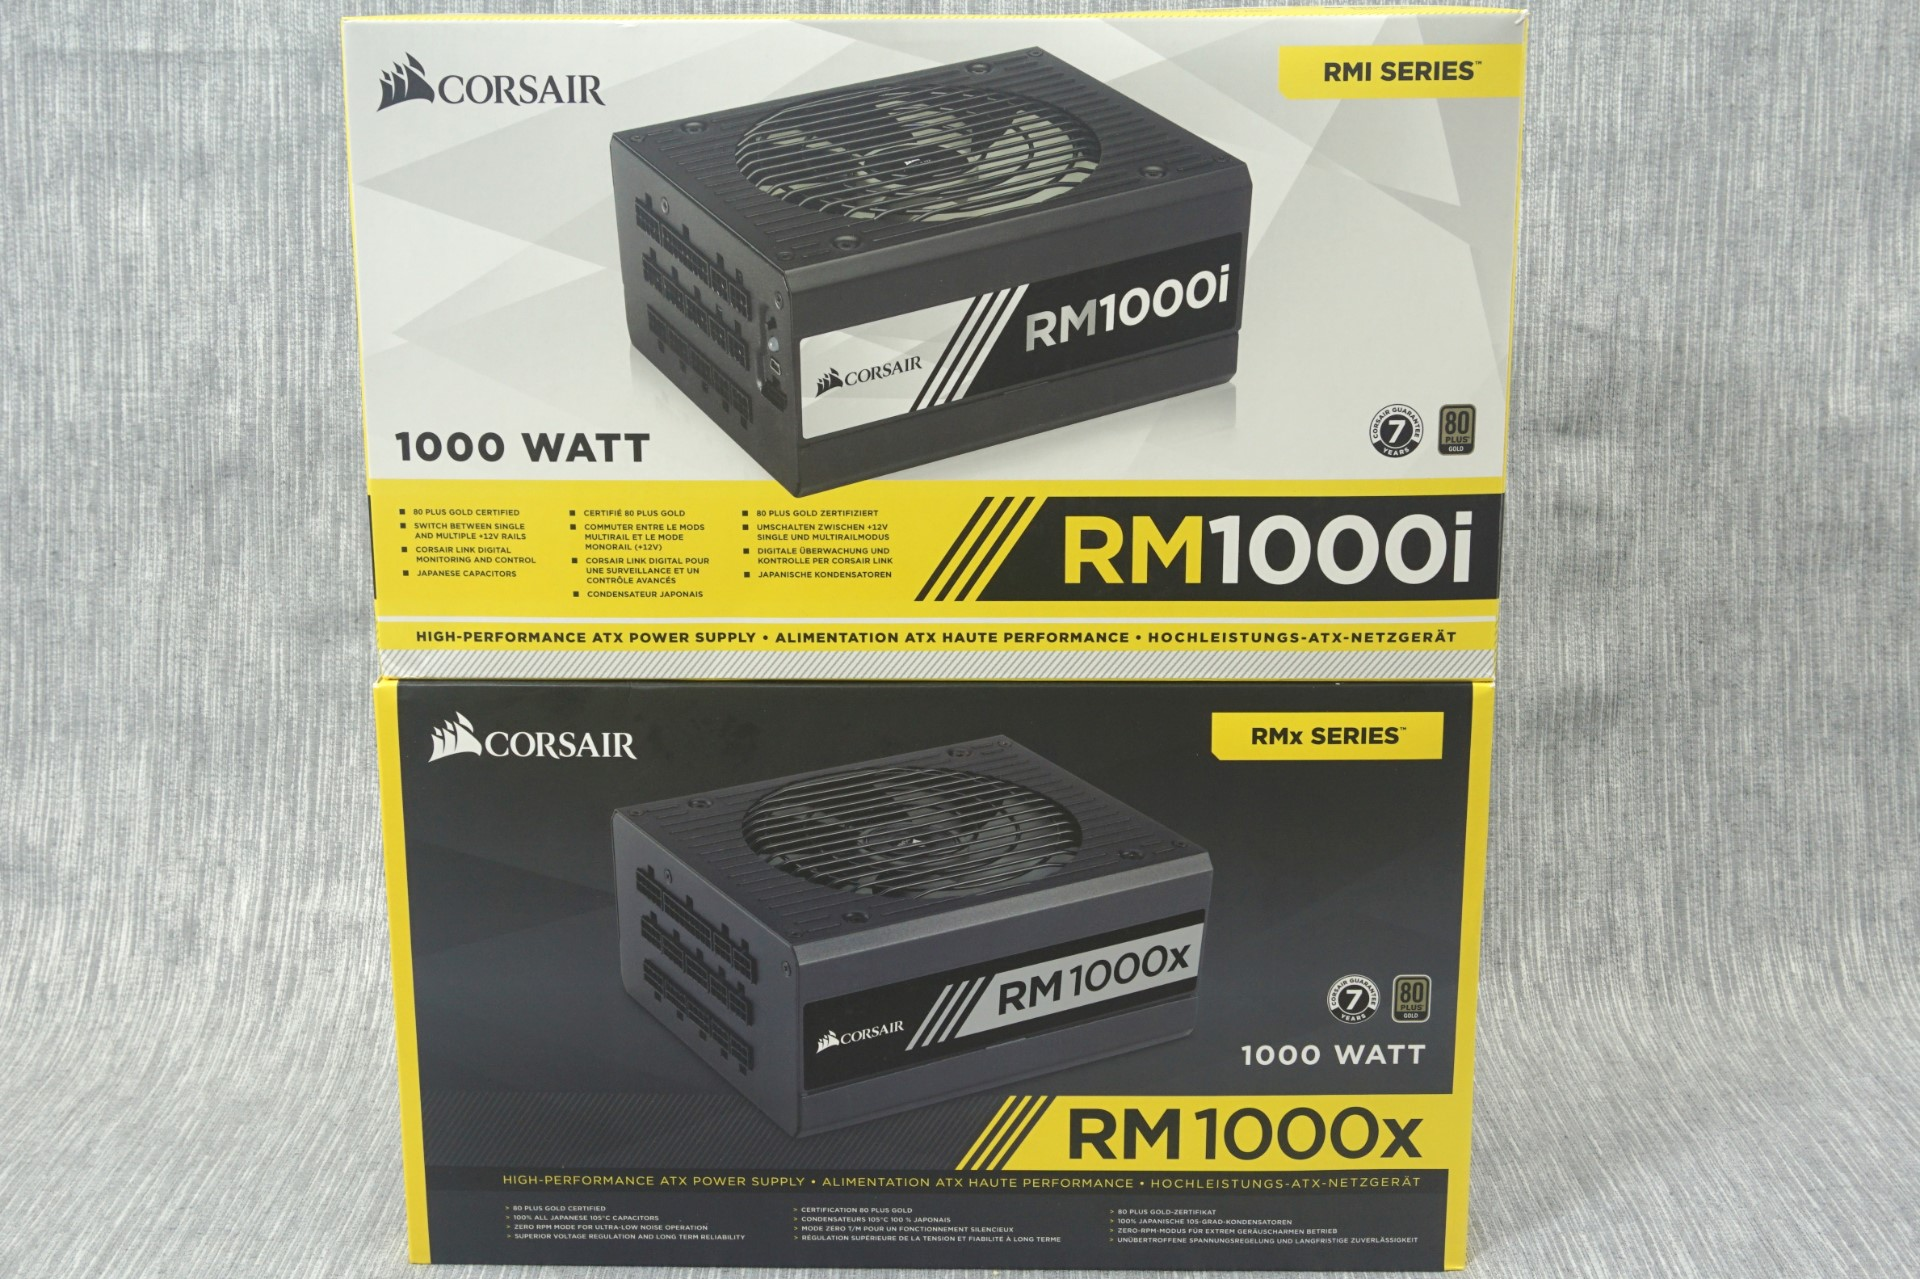 The Corsair Rm1000x And Rm1000i 1000w Power Supply Review Voltage Regulator Is Essentially Same Packaging Bundle